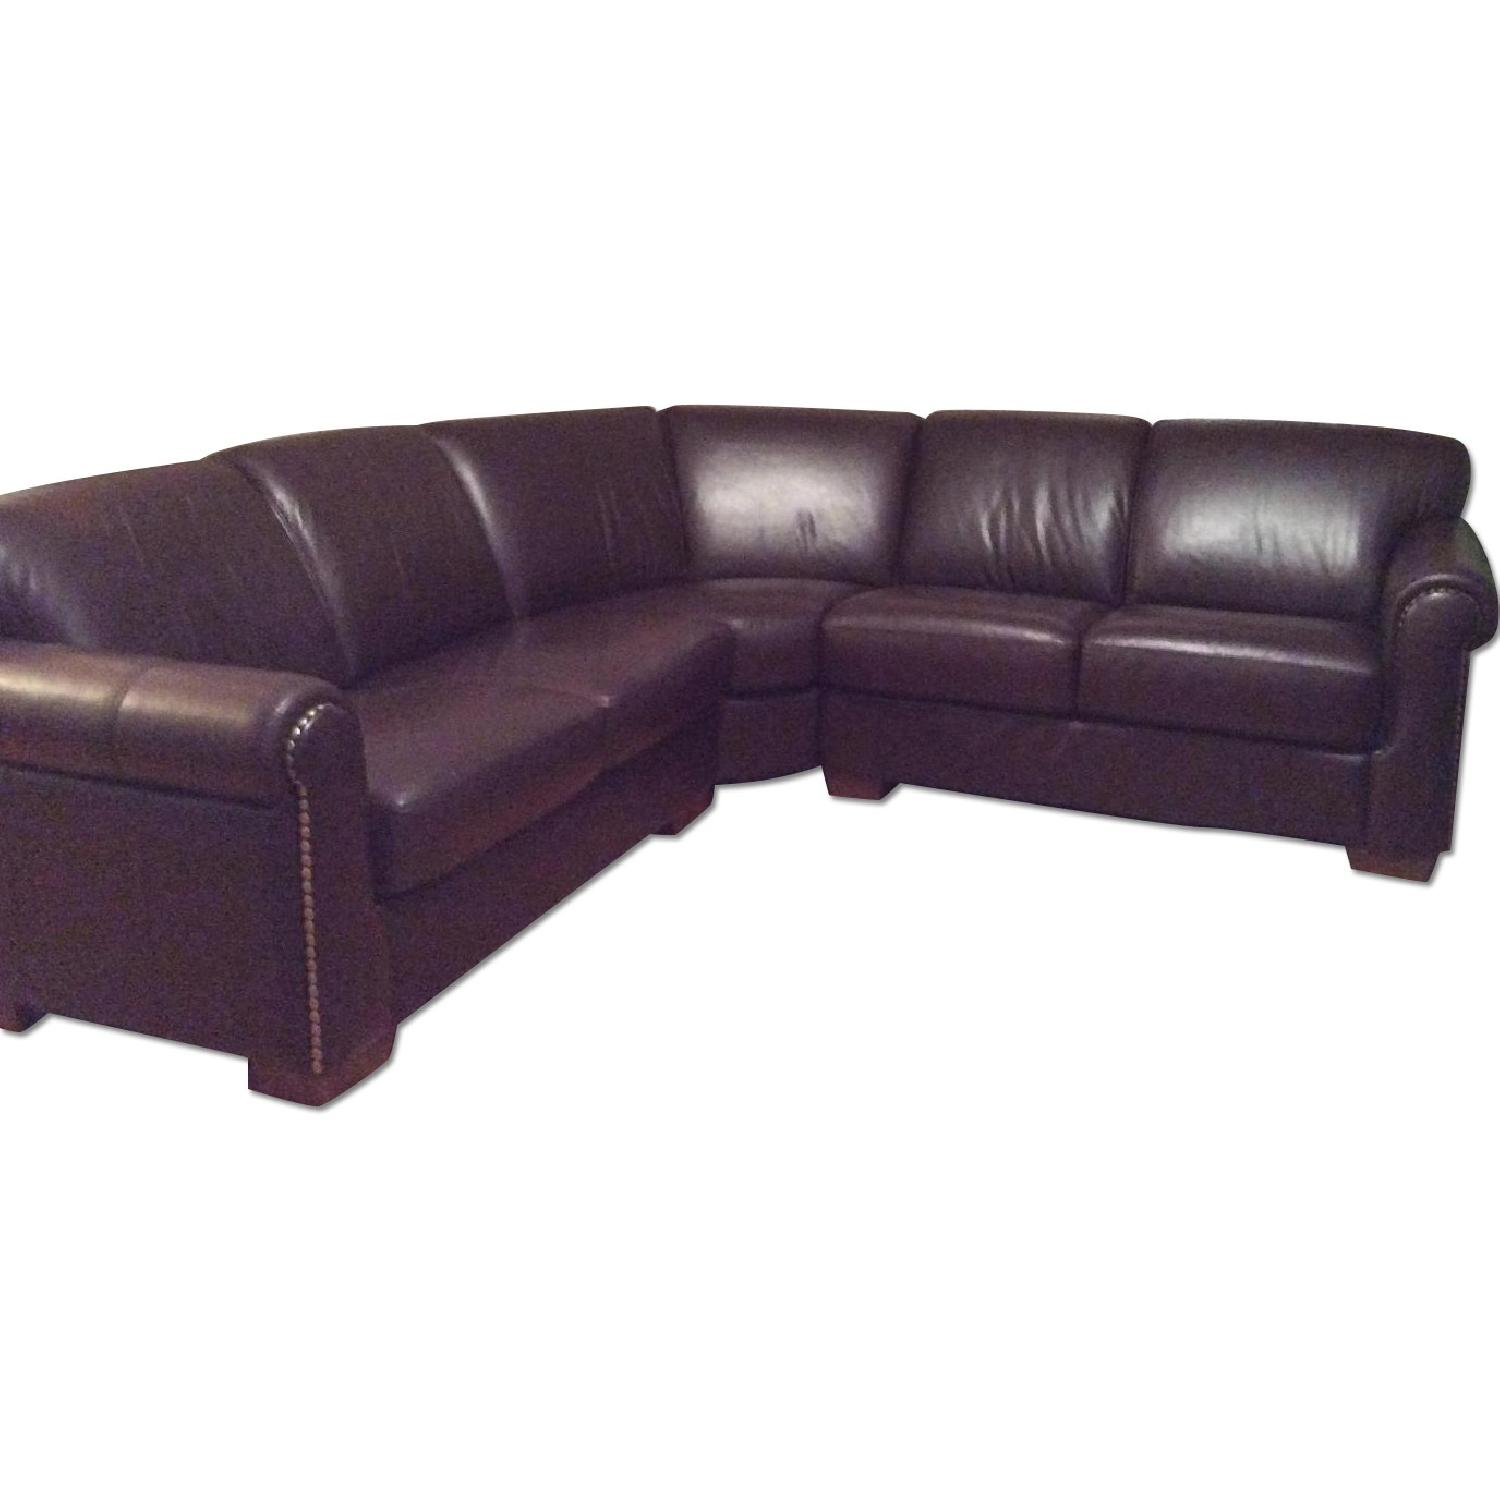 Macy's Brown Leather Nailhead Sectional Sofa